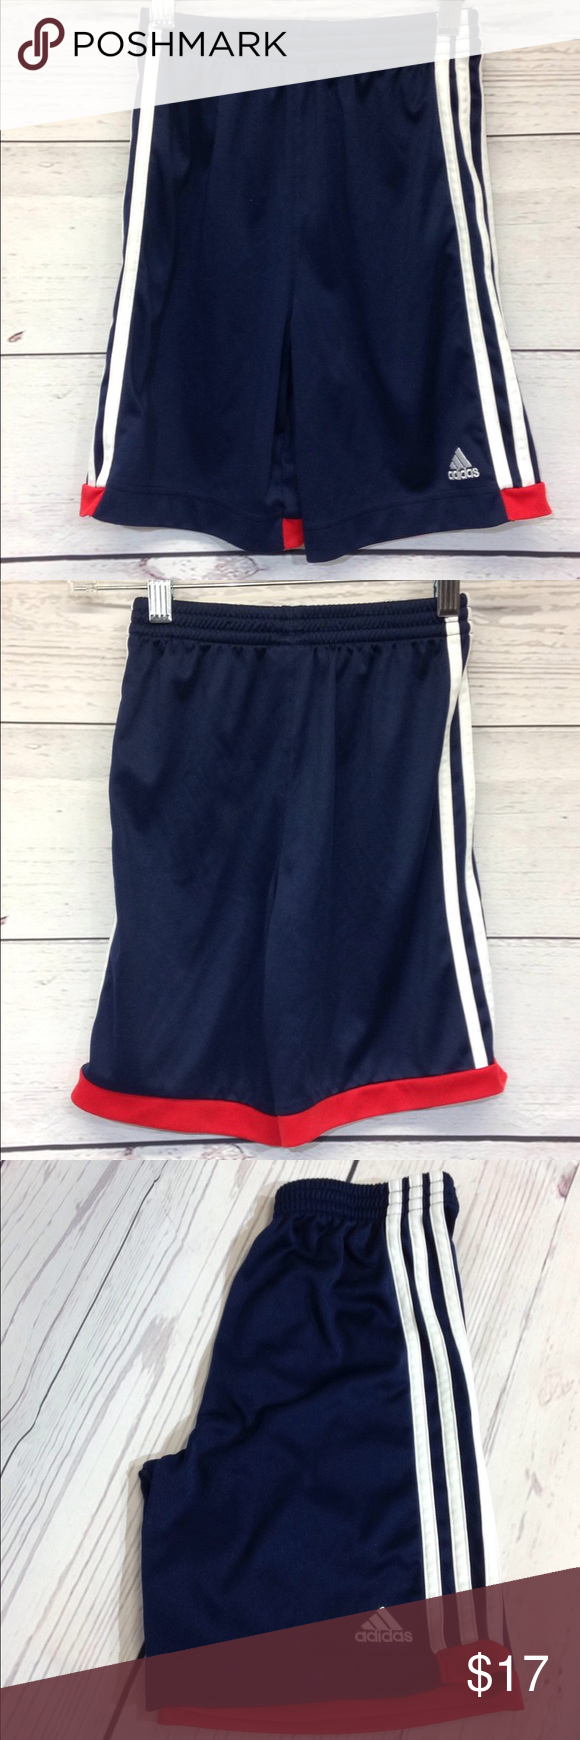 20b041108 Adidas Boys Shorts Size 7 Red White Blue Adidas Boys Shorts Size 7 Red  White Blue adidas Bottoms Shorts